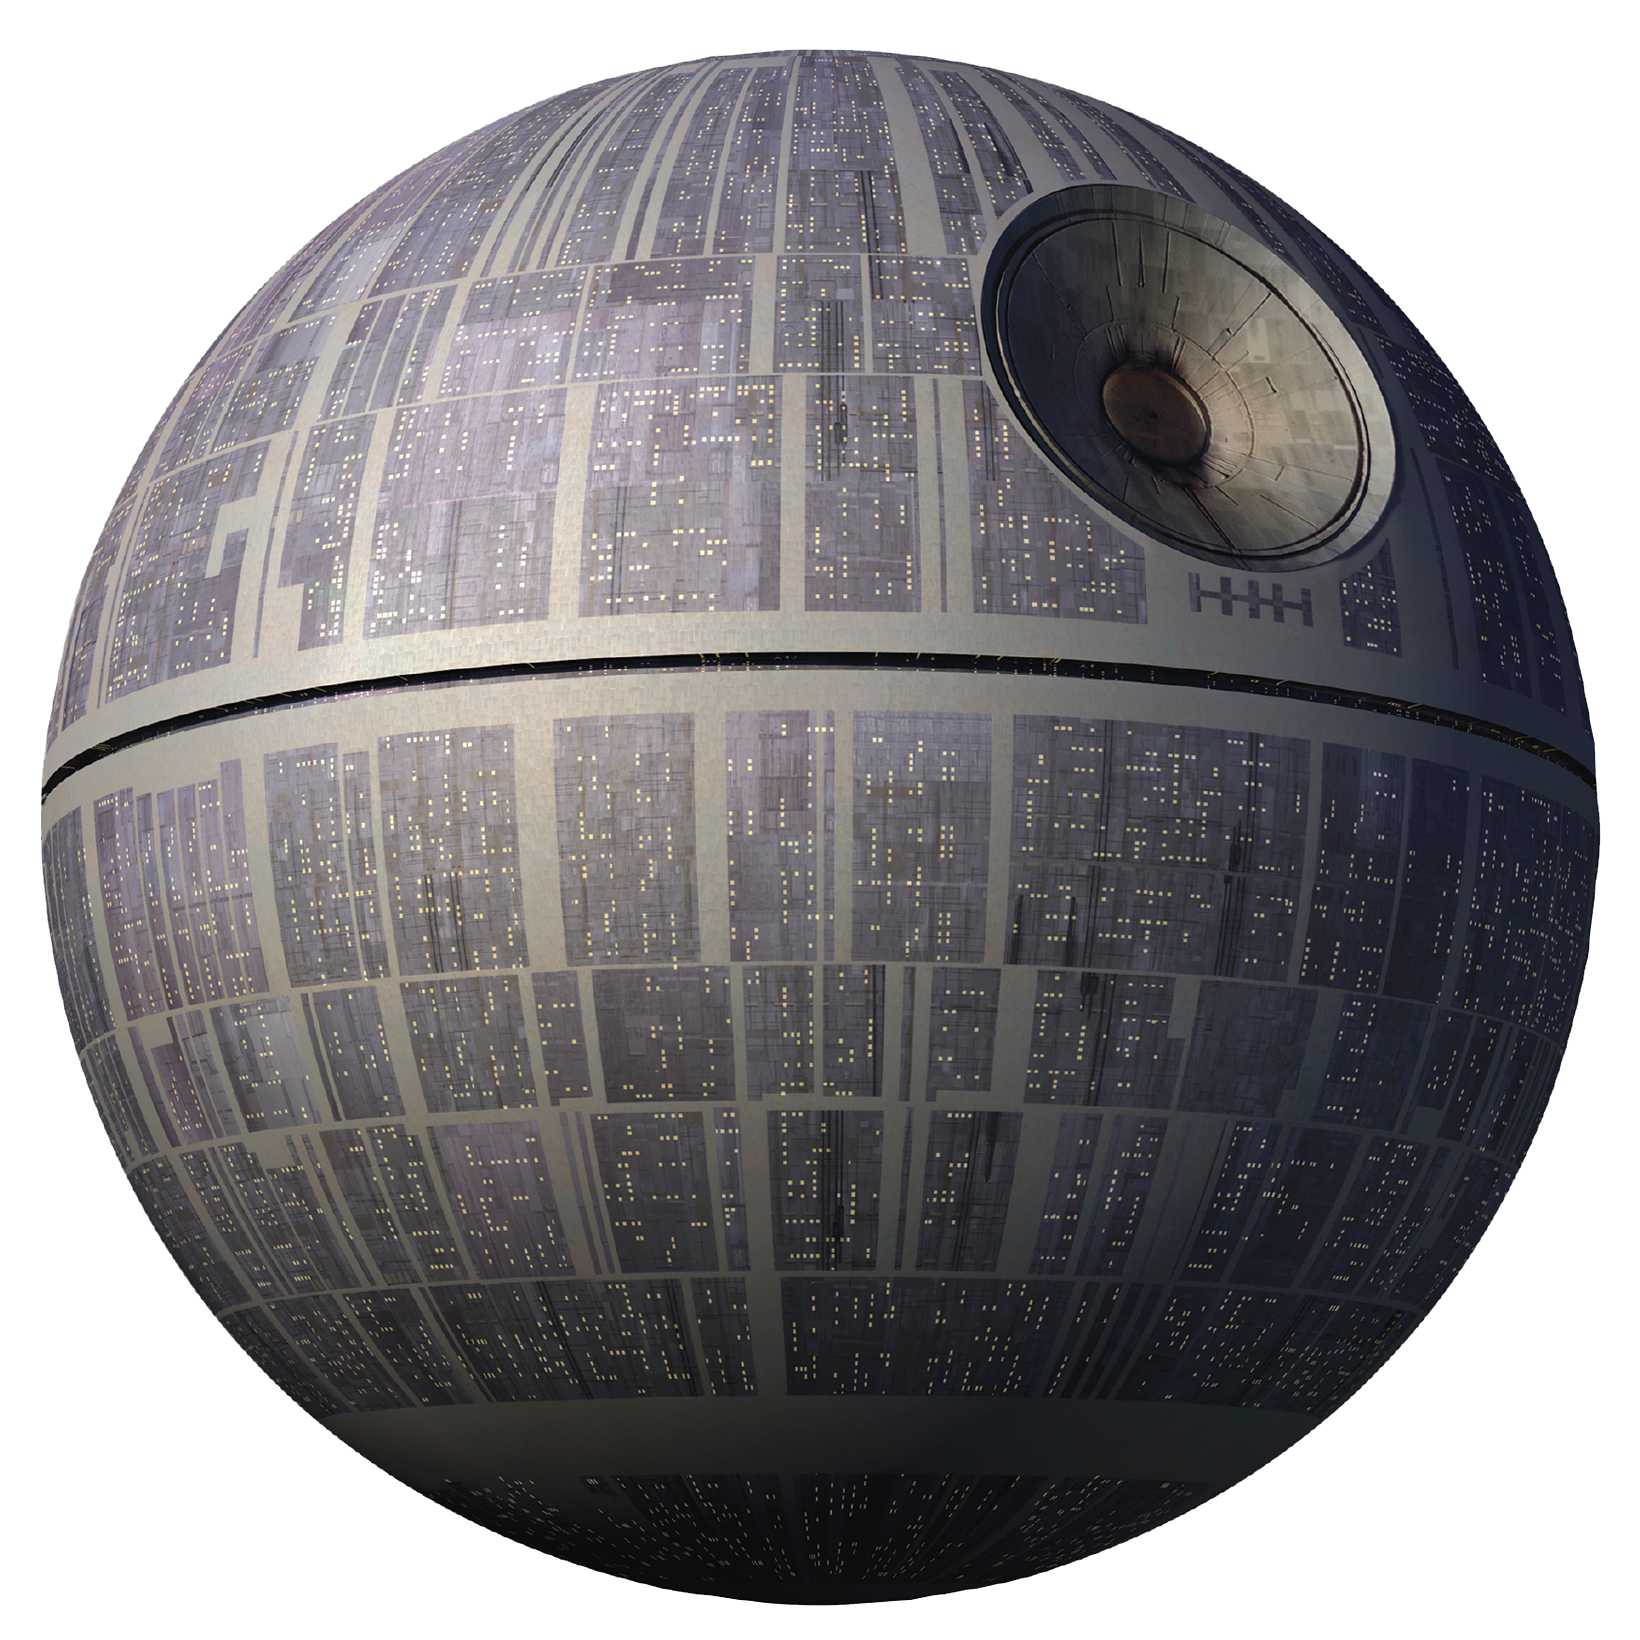 Deathstar_negwt.png